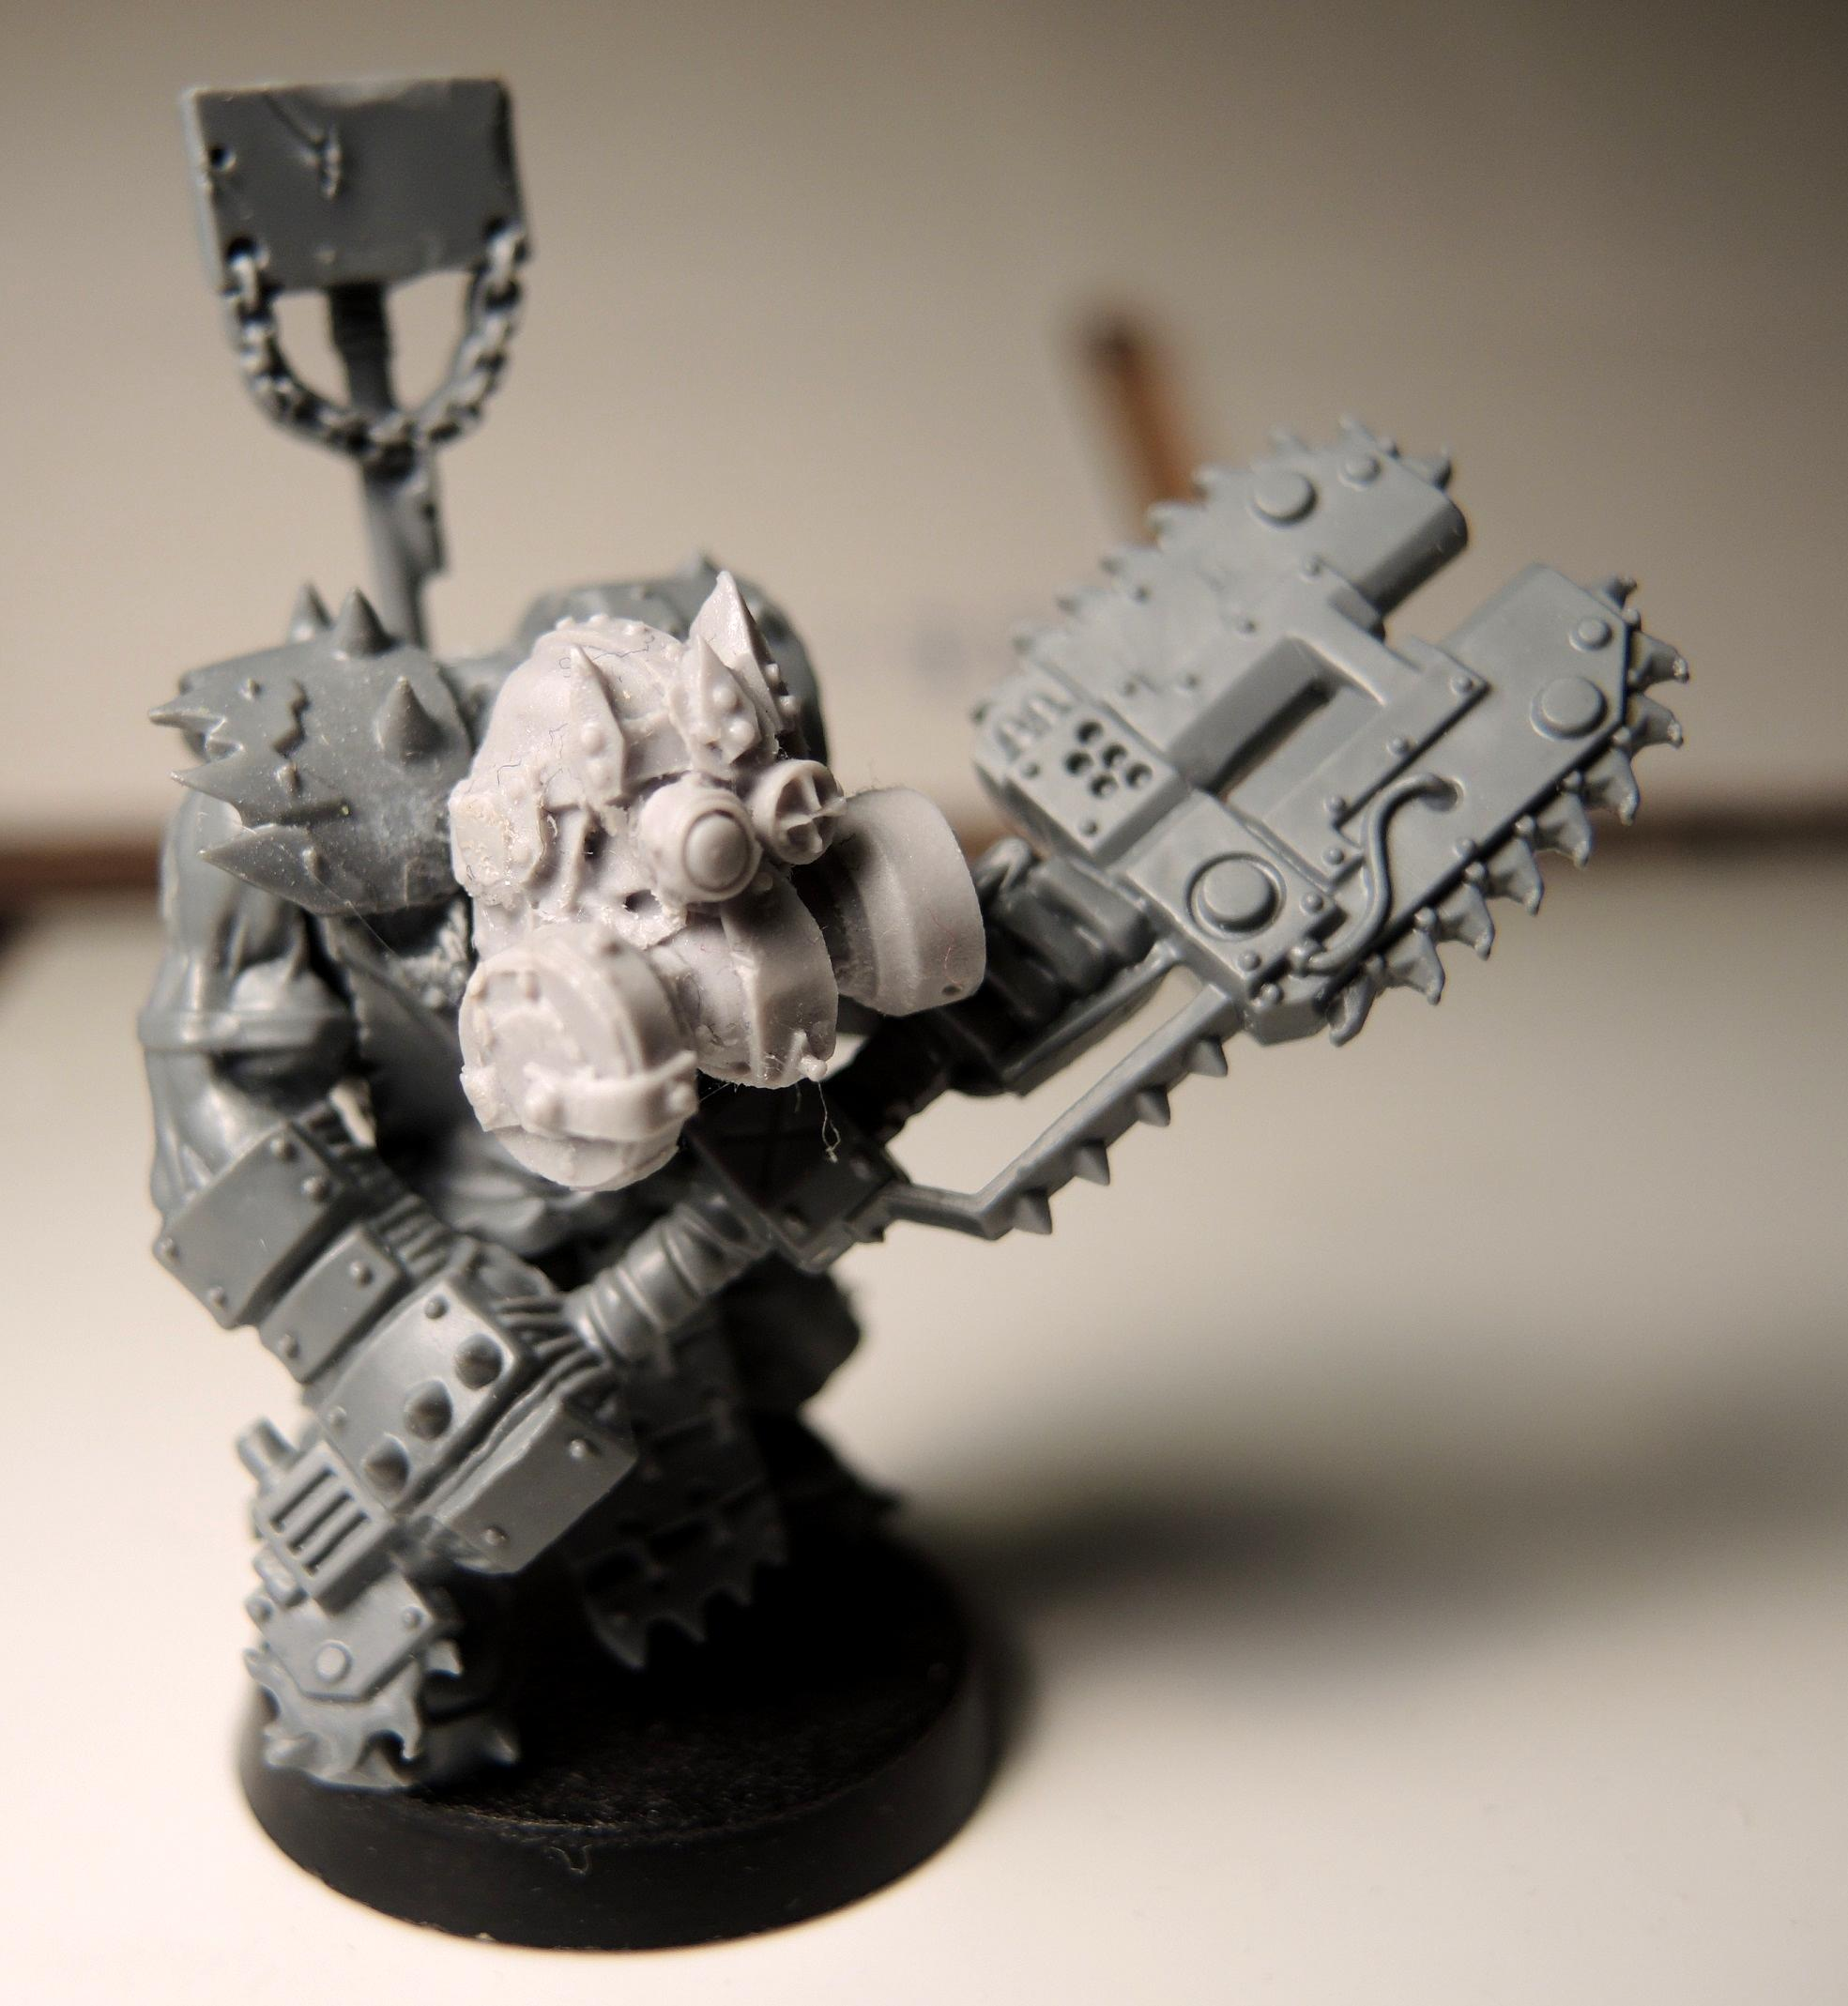 Bad Moons, Conversion, Deathskulls, Kommando, Orks